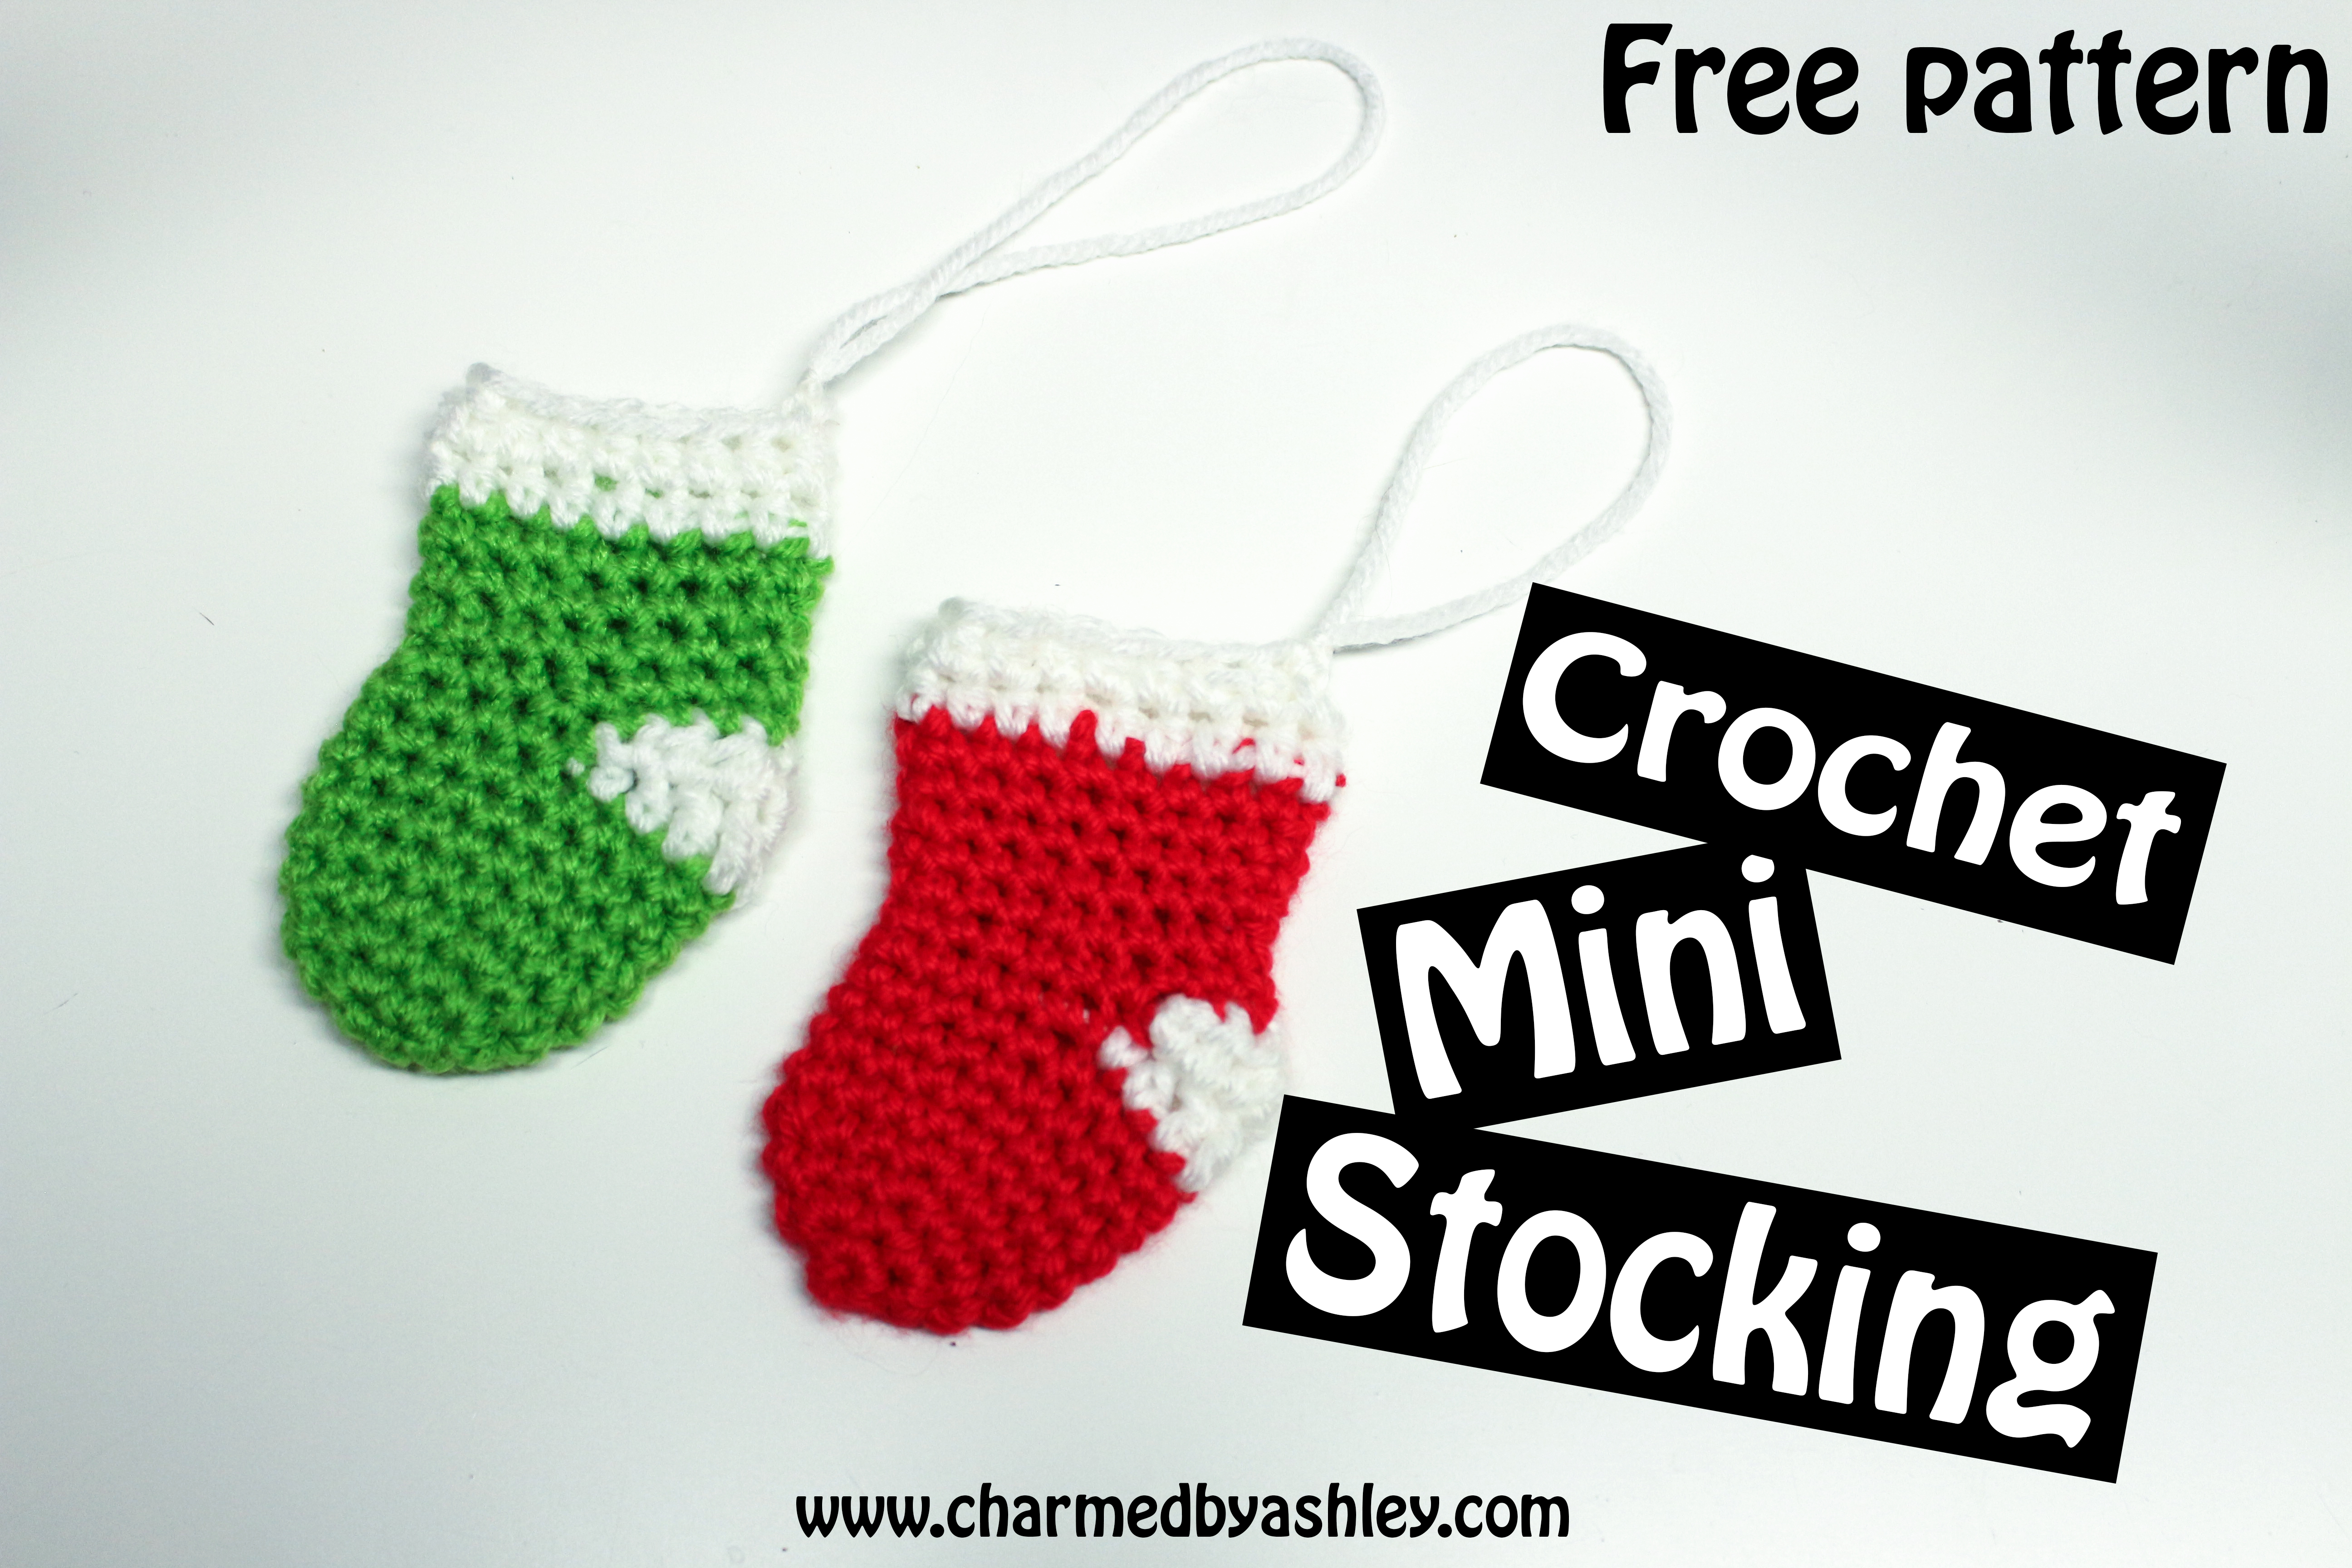 Mini Stocking Free Pattern Tutorial Charmed By Ashley